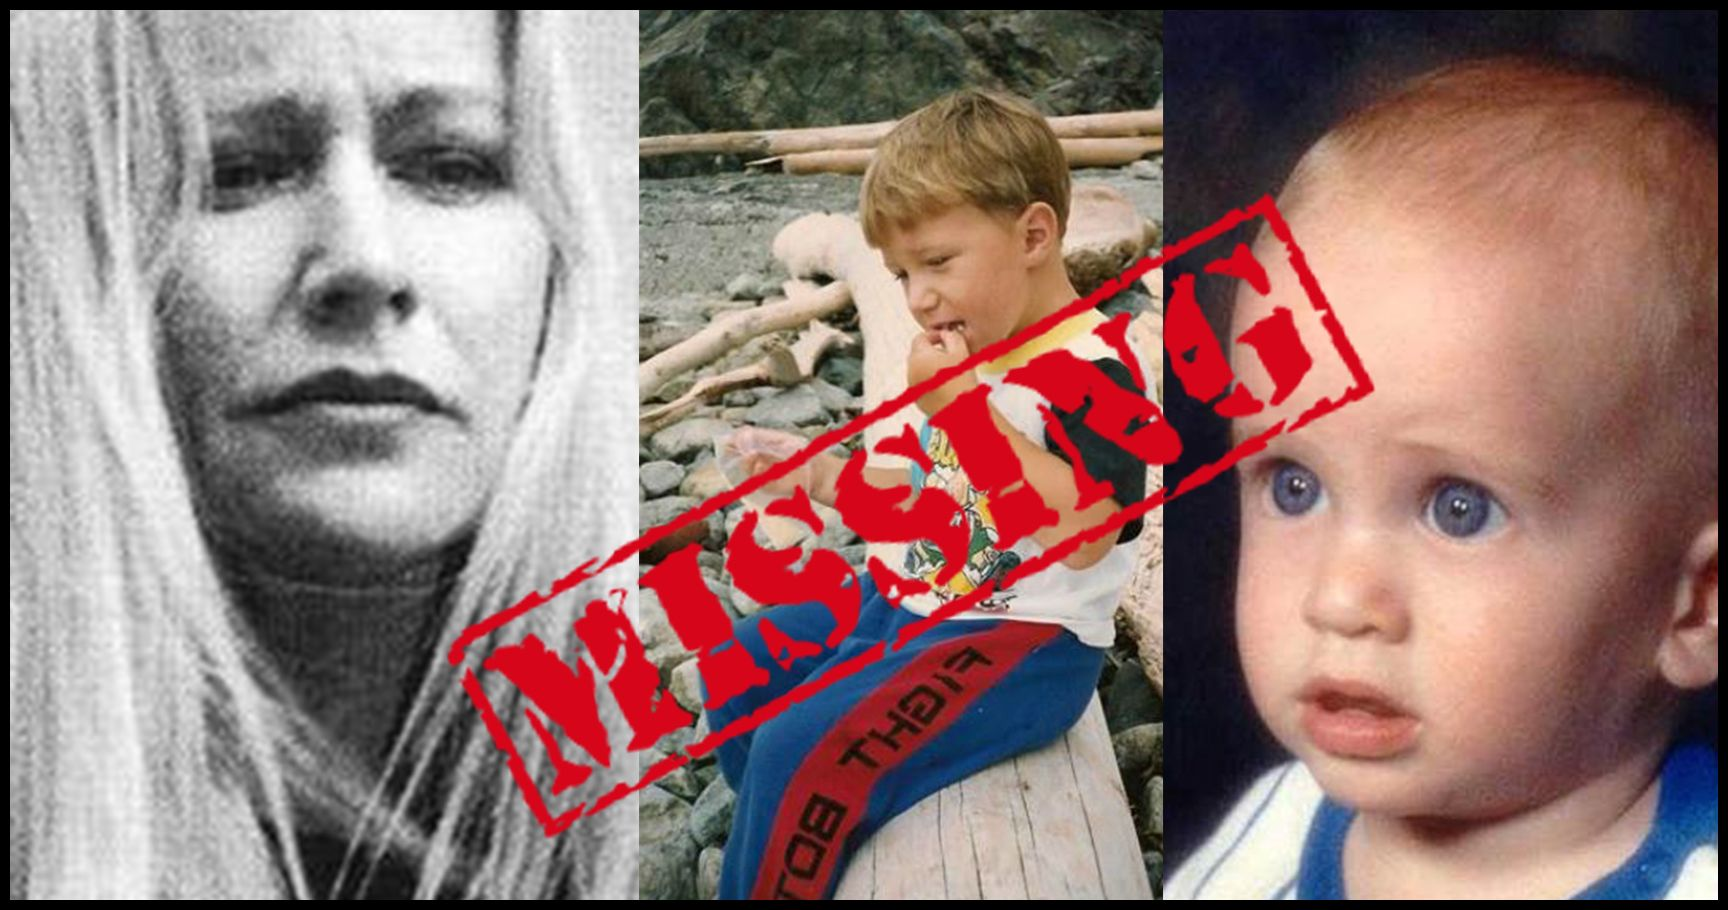 15 Unsolved Disappearances That Will Have You Looking Over Your Shoulder